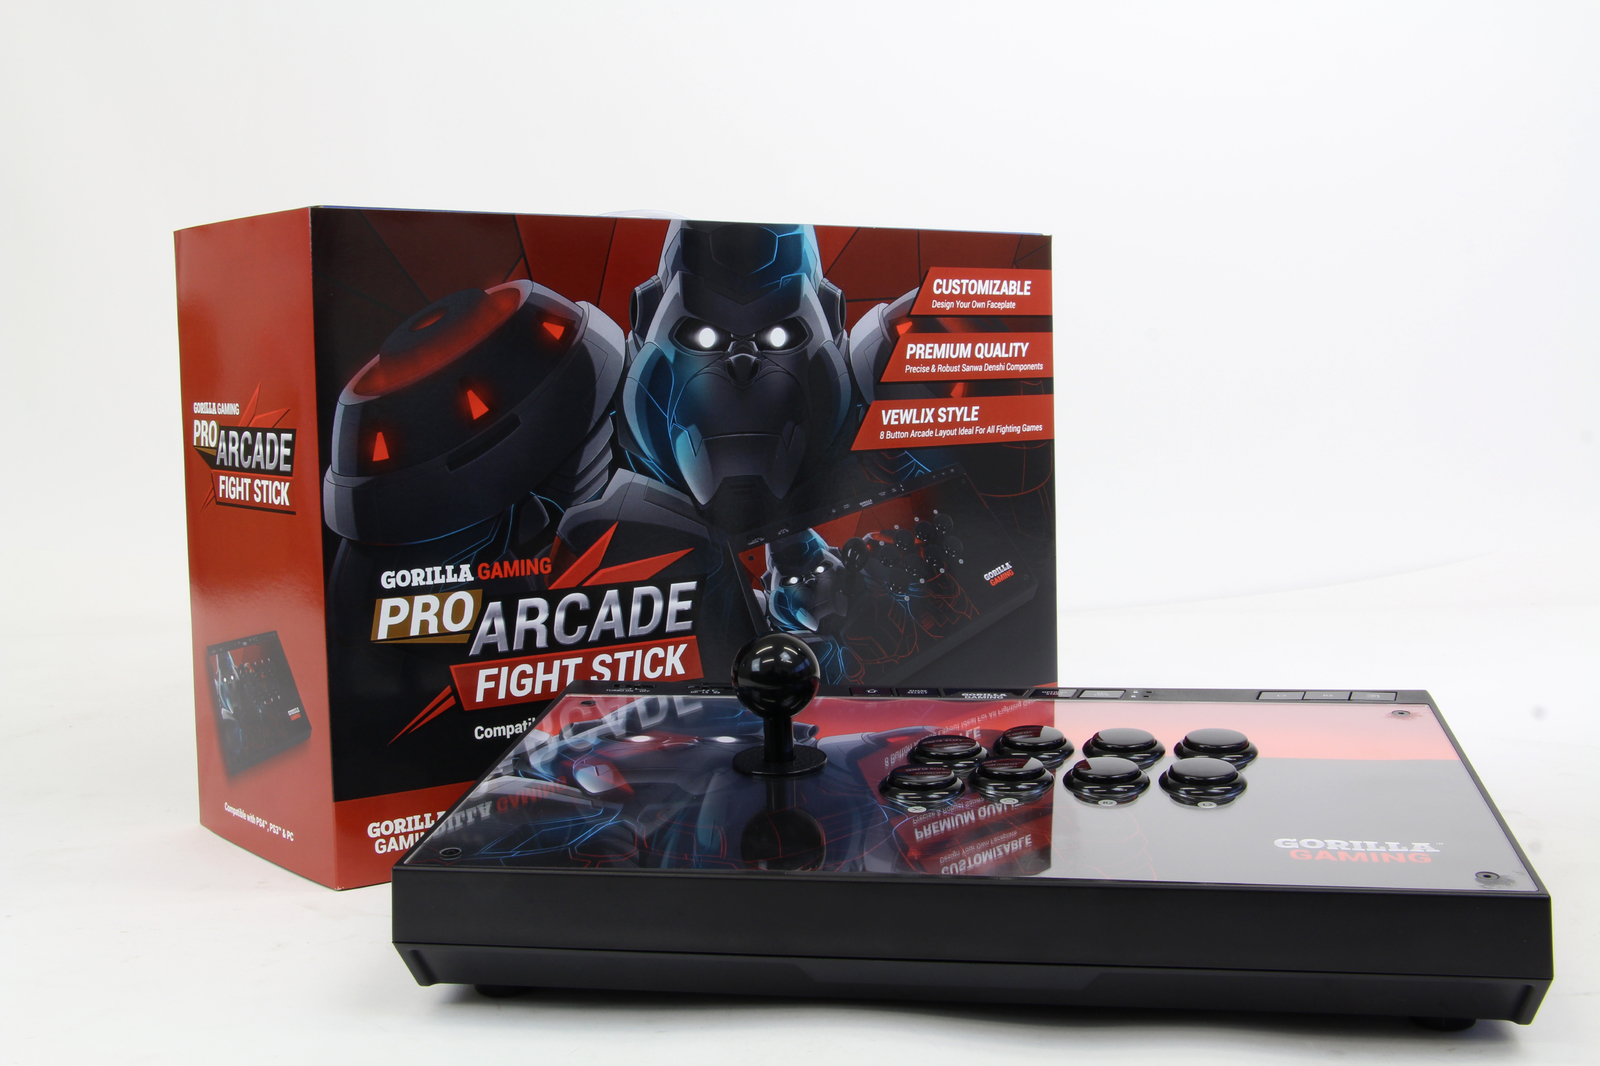 Gorilla Gaming PRO Arcade Fight Stick (PS4, PS3, PC) screenshot